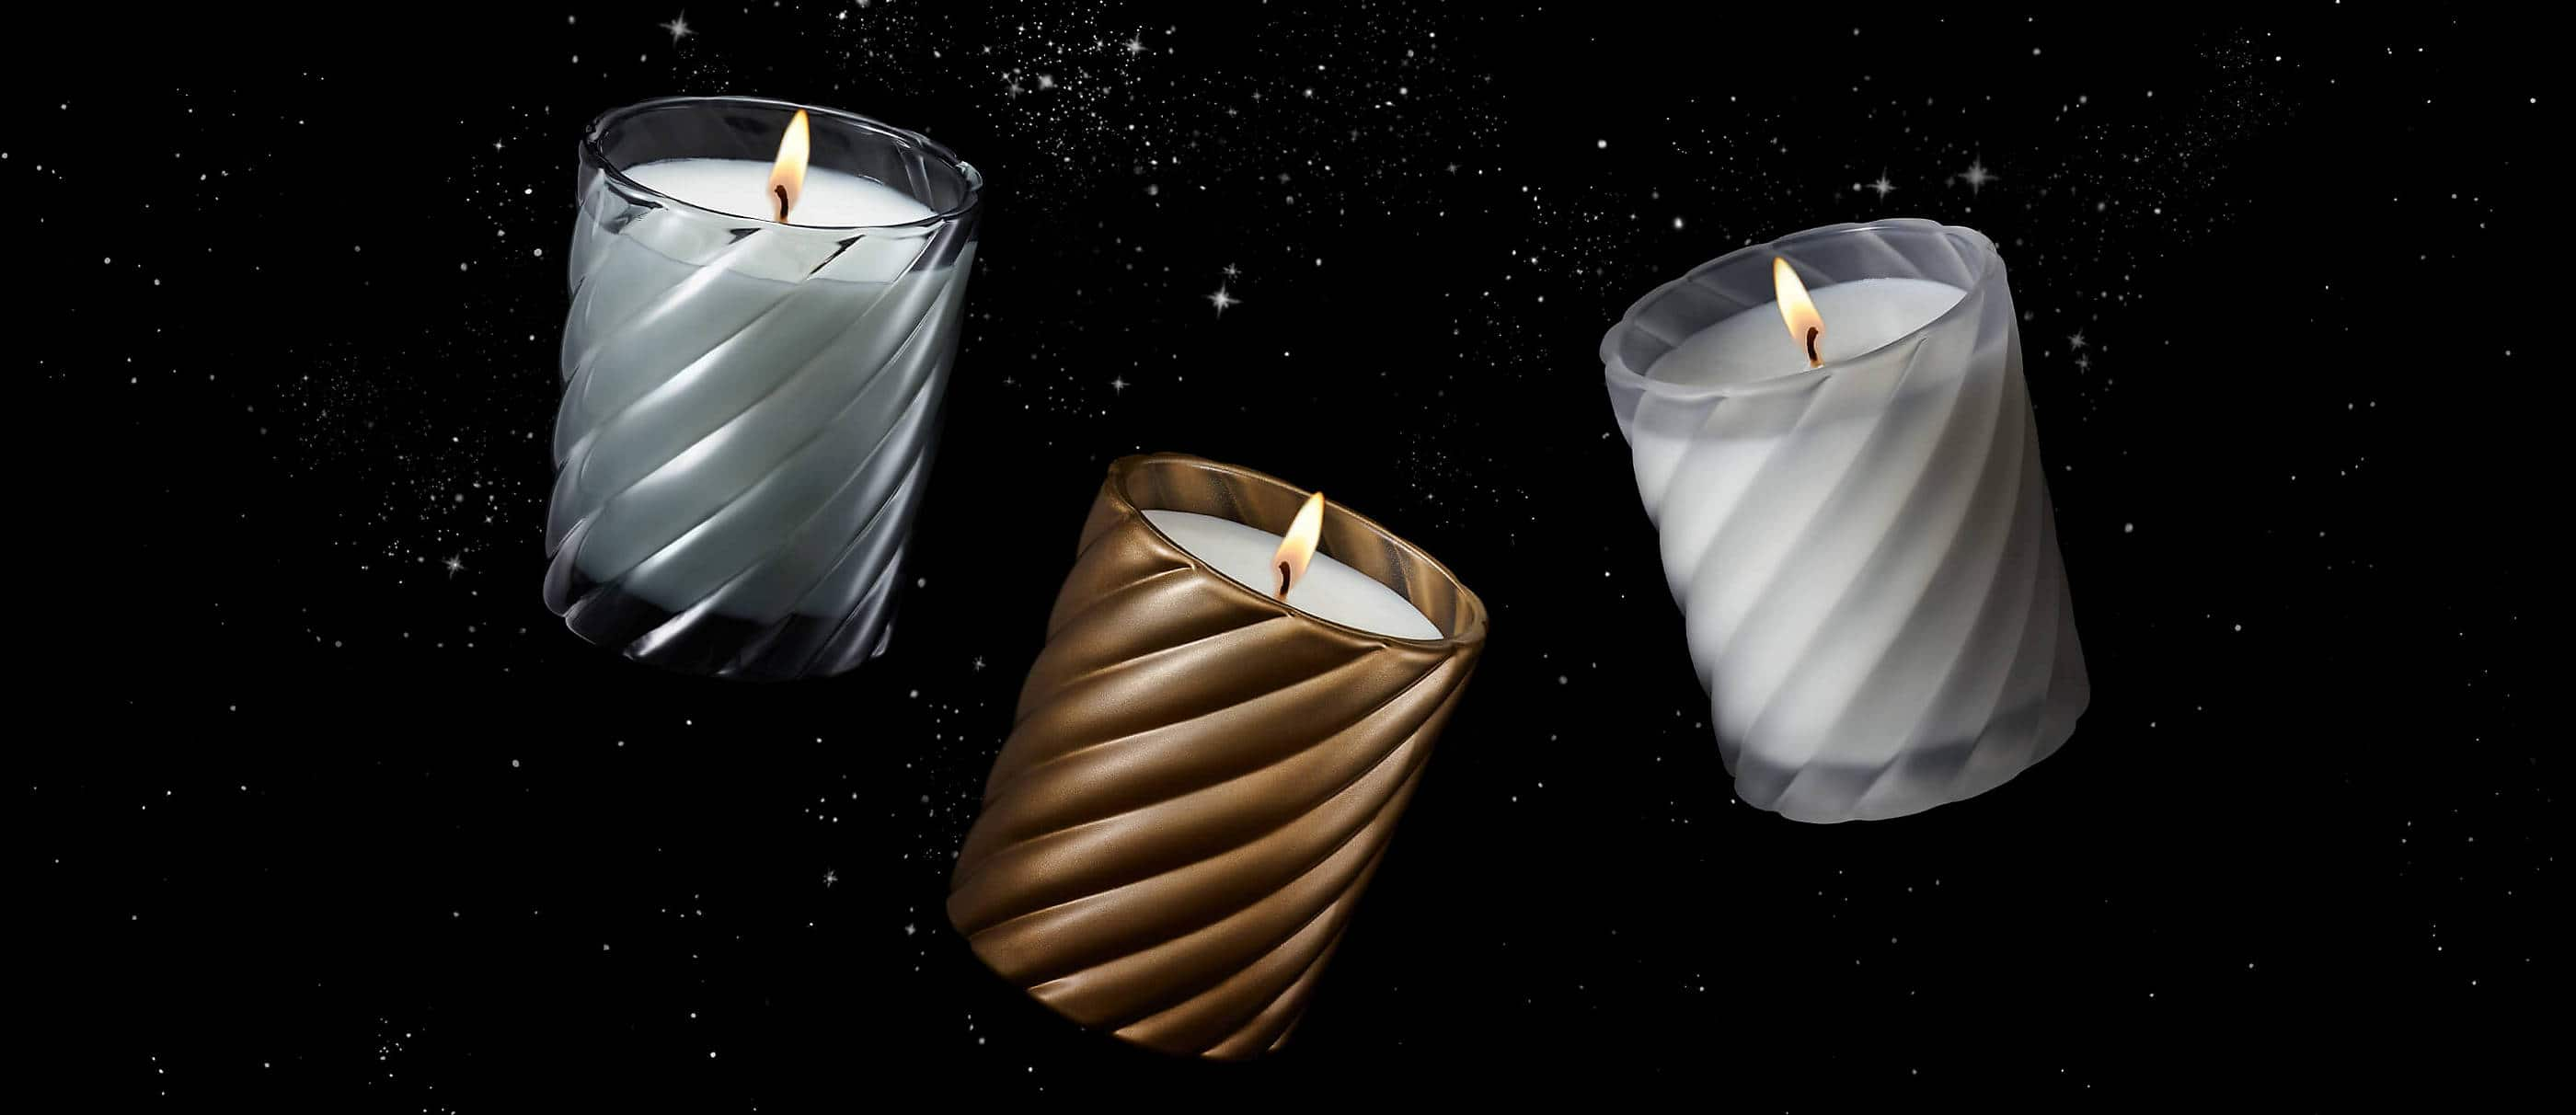 A color photograph shows three David Yurman candles floating in front of a black background. The candles are each housed in a glass Cable vessel.